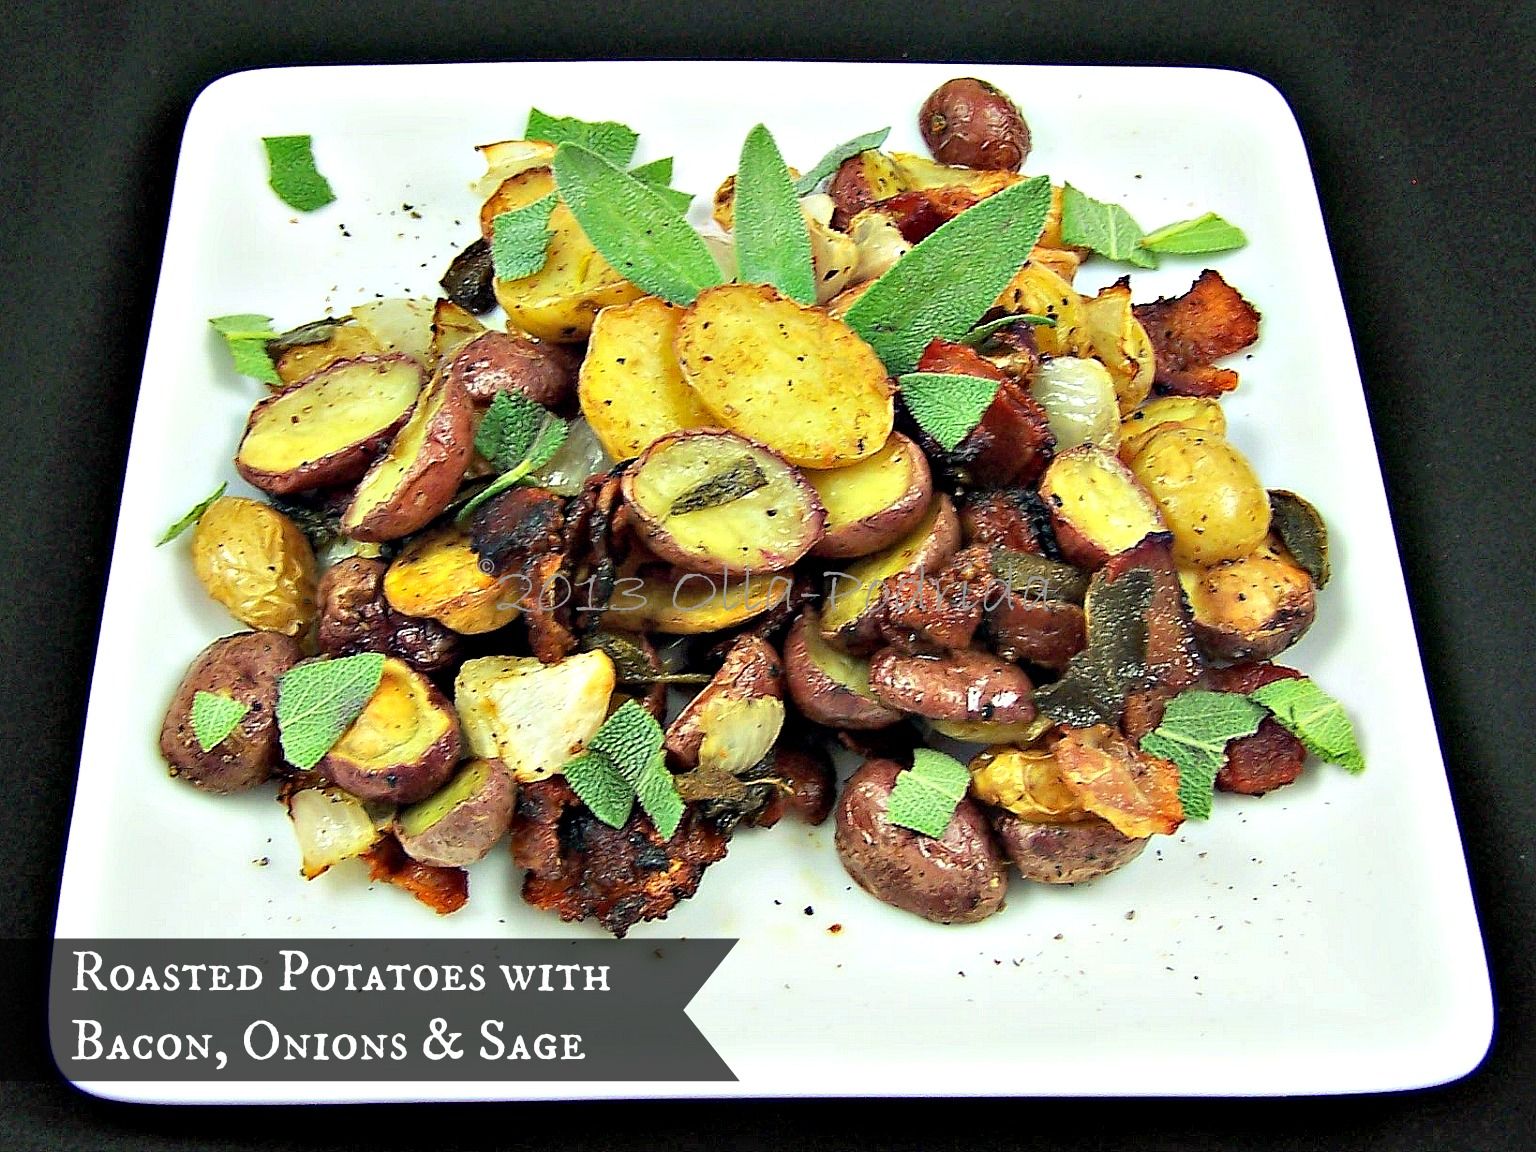 Olla-Podrida: Roasted Potatoes with Bacon, Onions & Sage